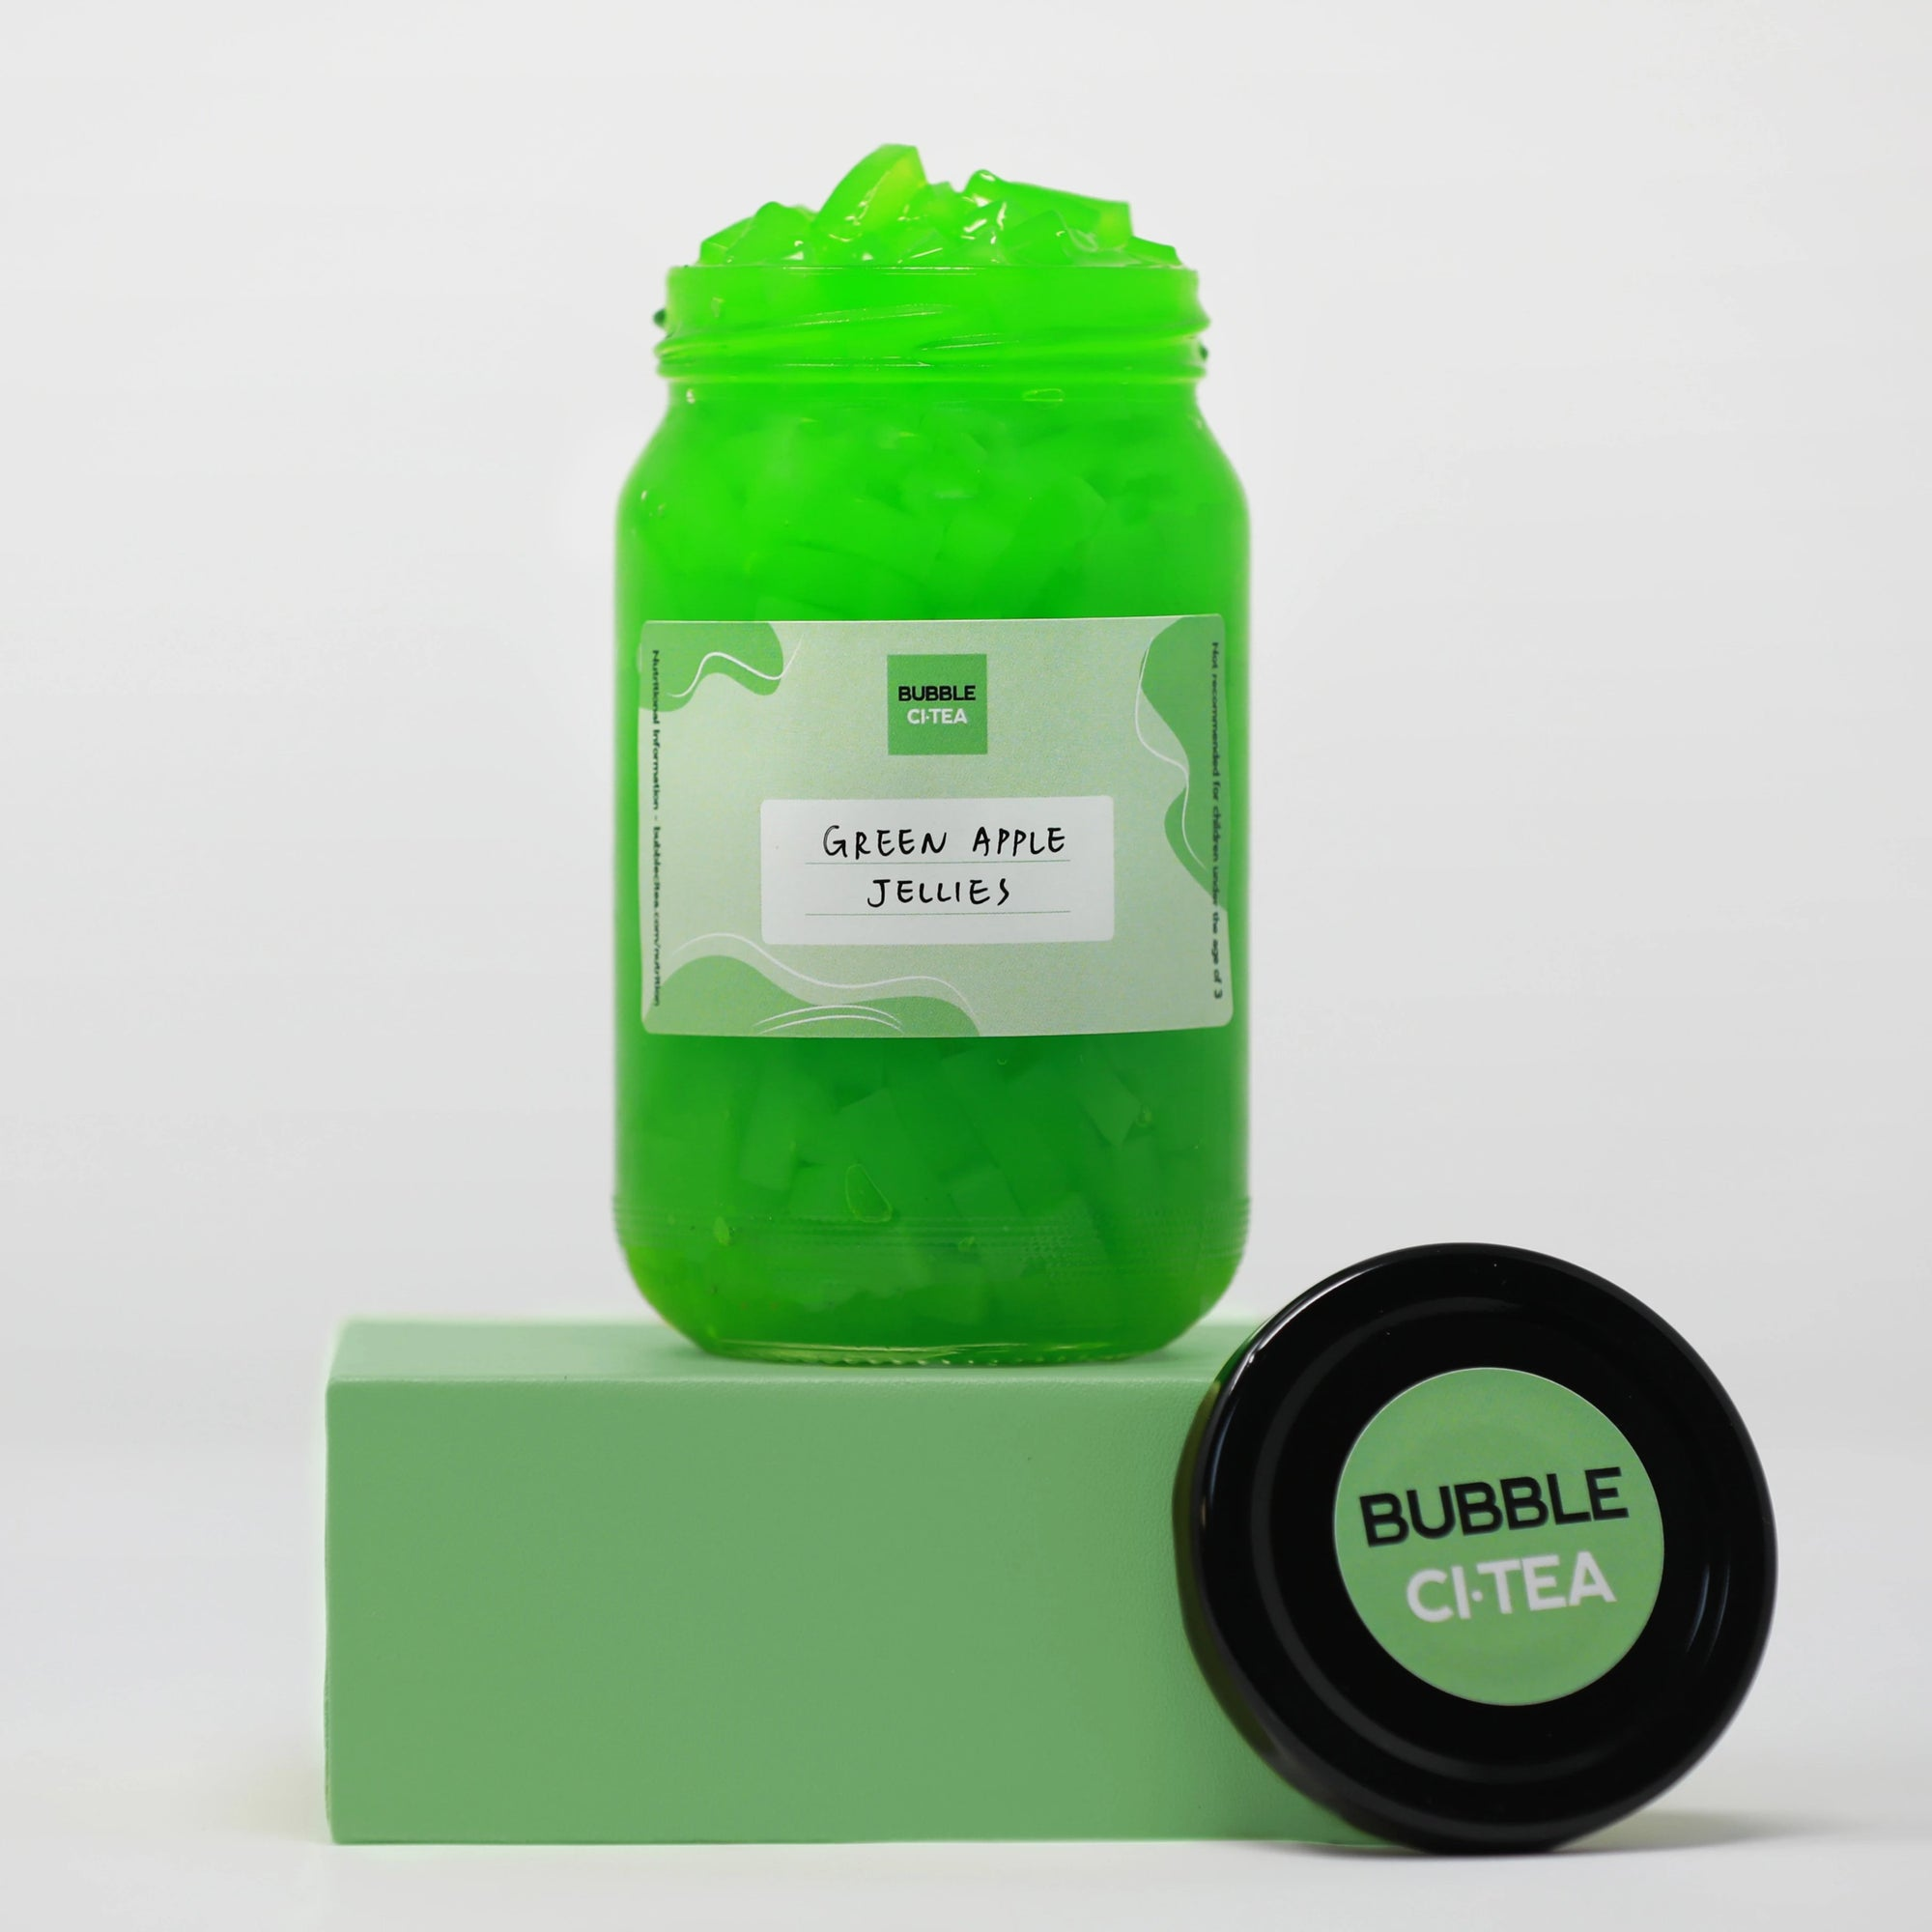 Glass jar with green apple jelly sitting on a green stand